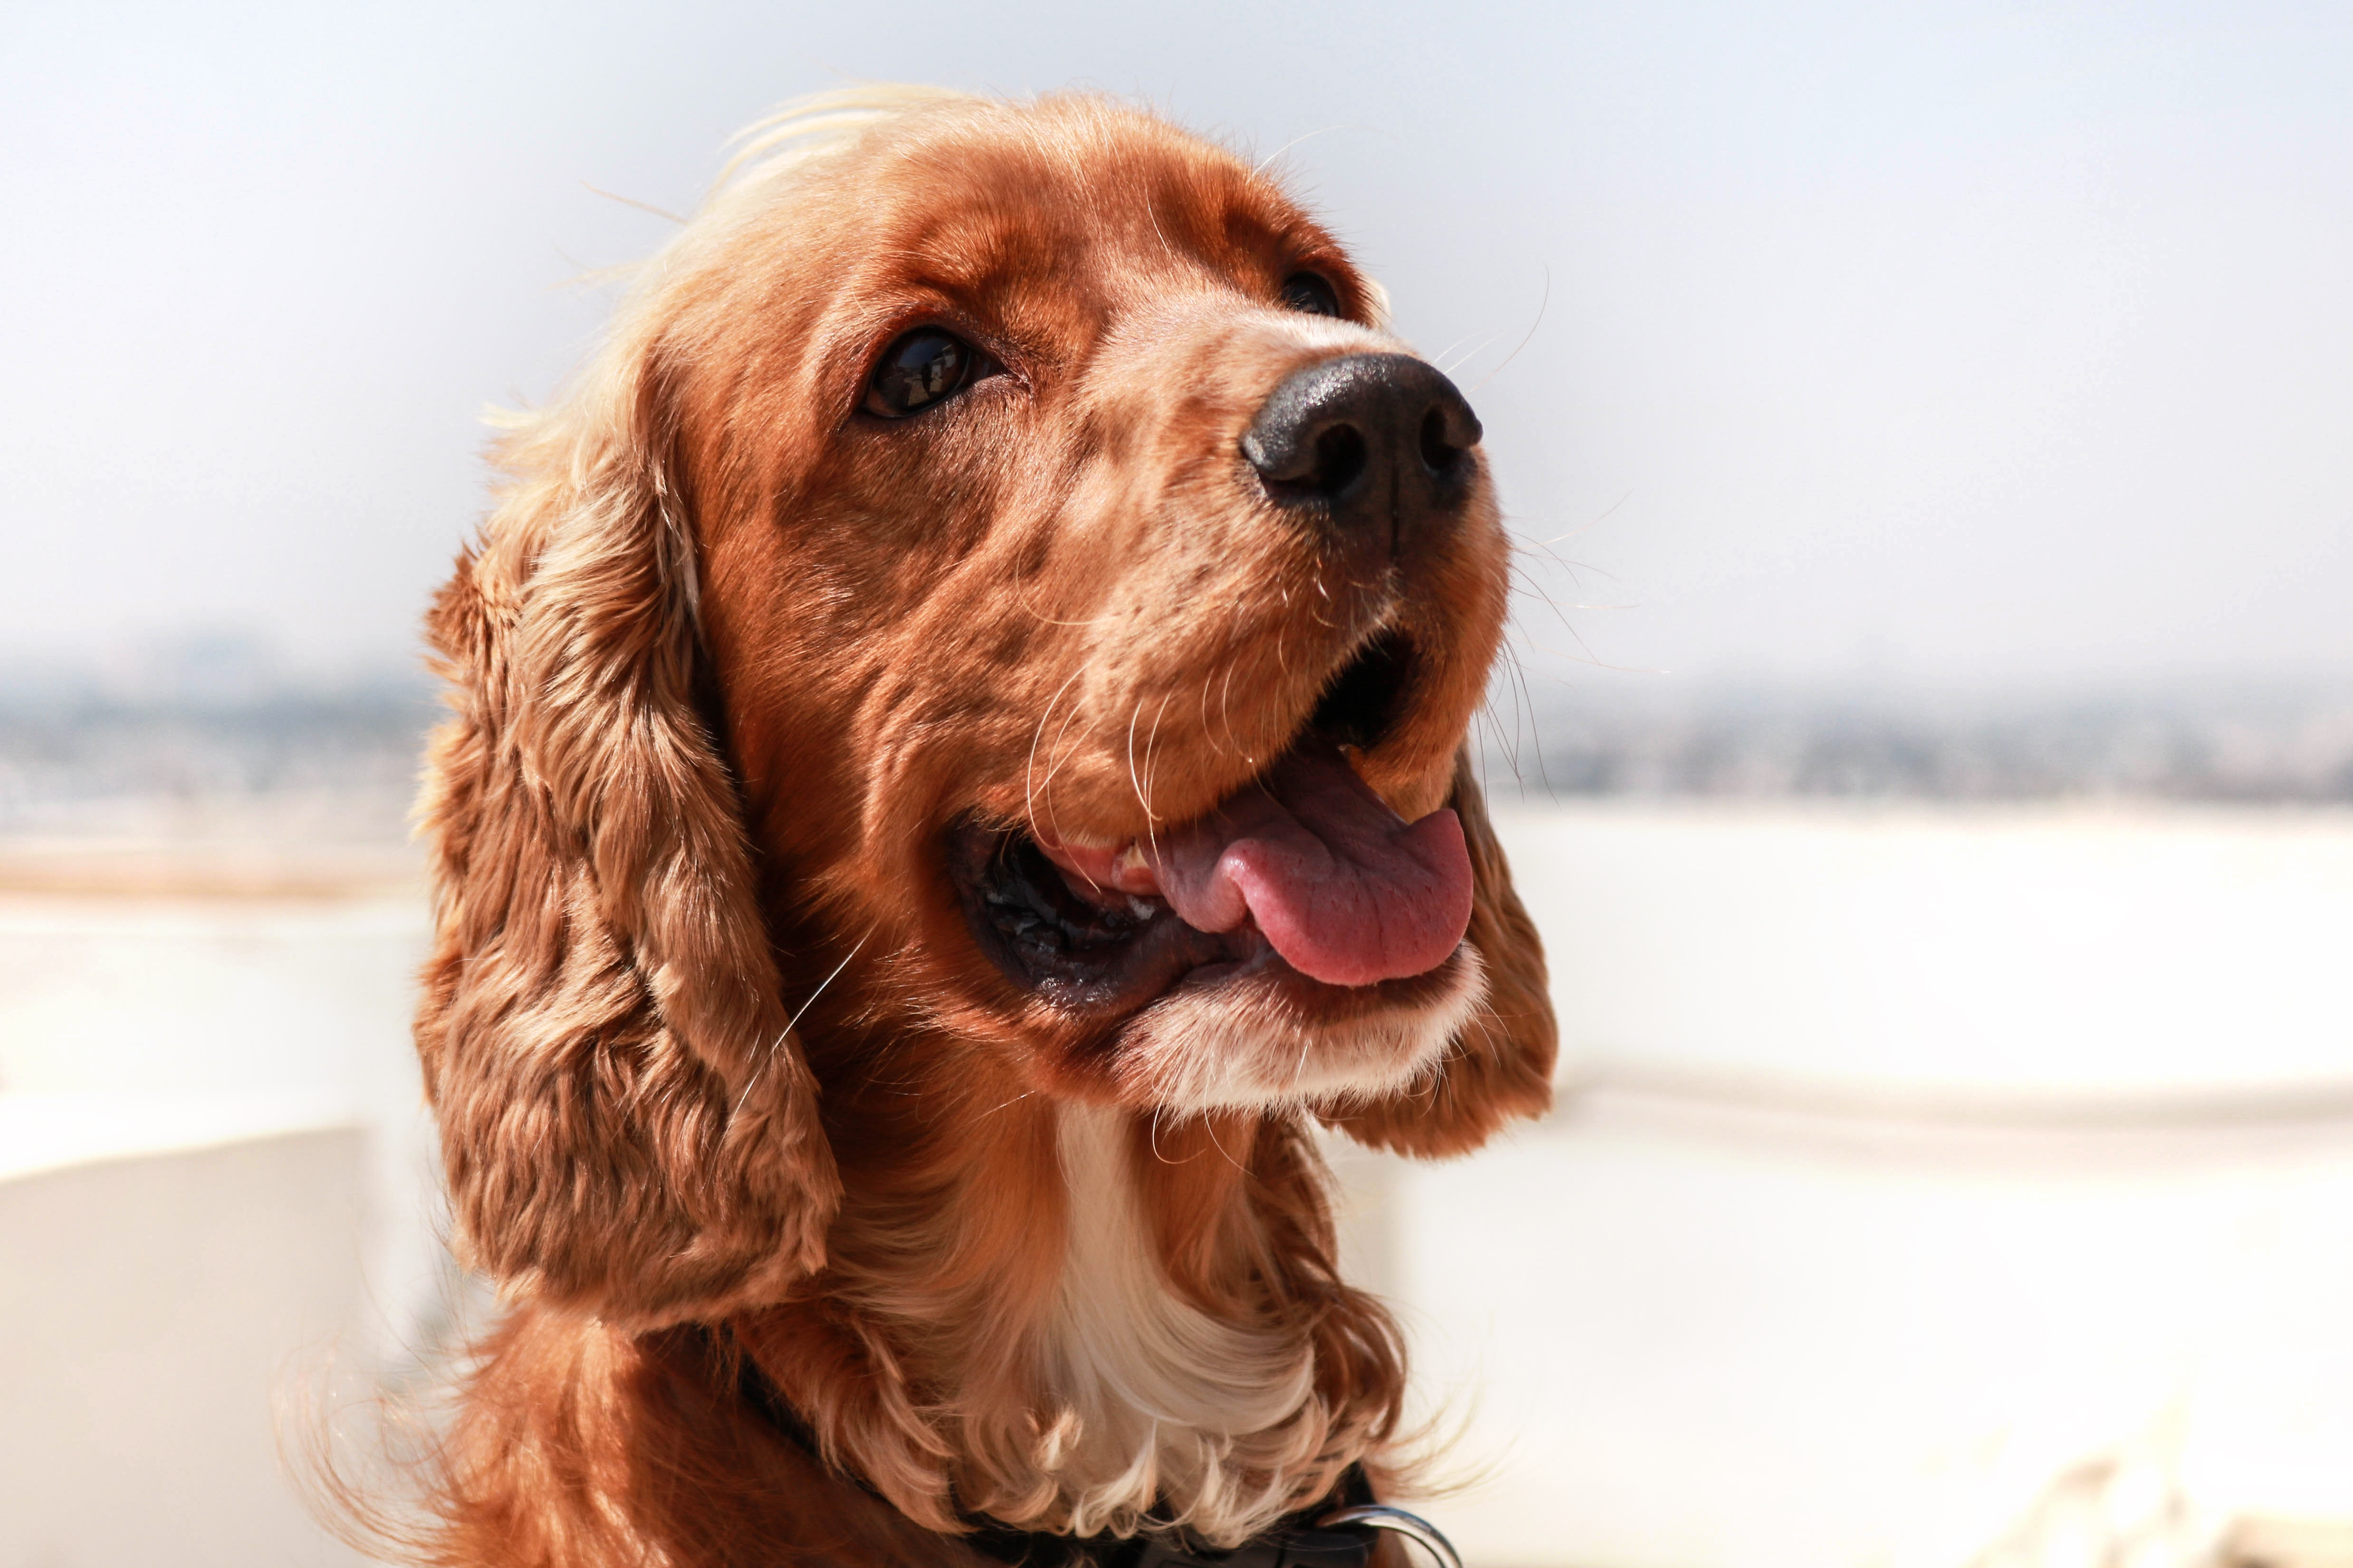 102951 download wallpaper Animals, English Cocker Spaniel, Dog, Muzzle, Protruding Tongue, Tongue Stuck Out screensavers and pictures for free